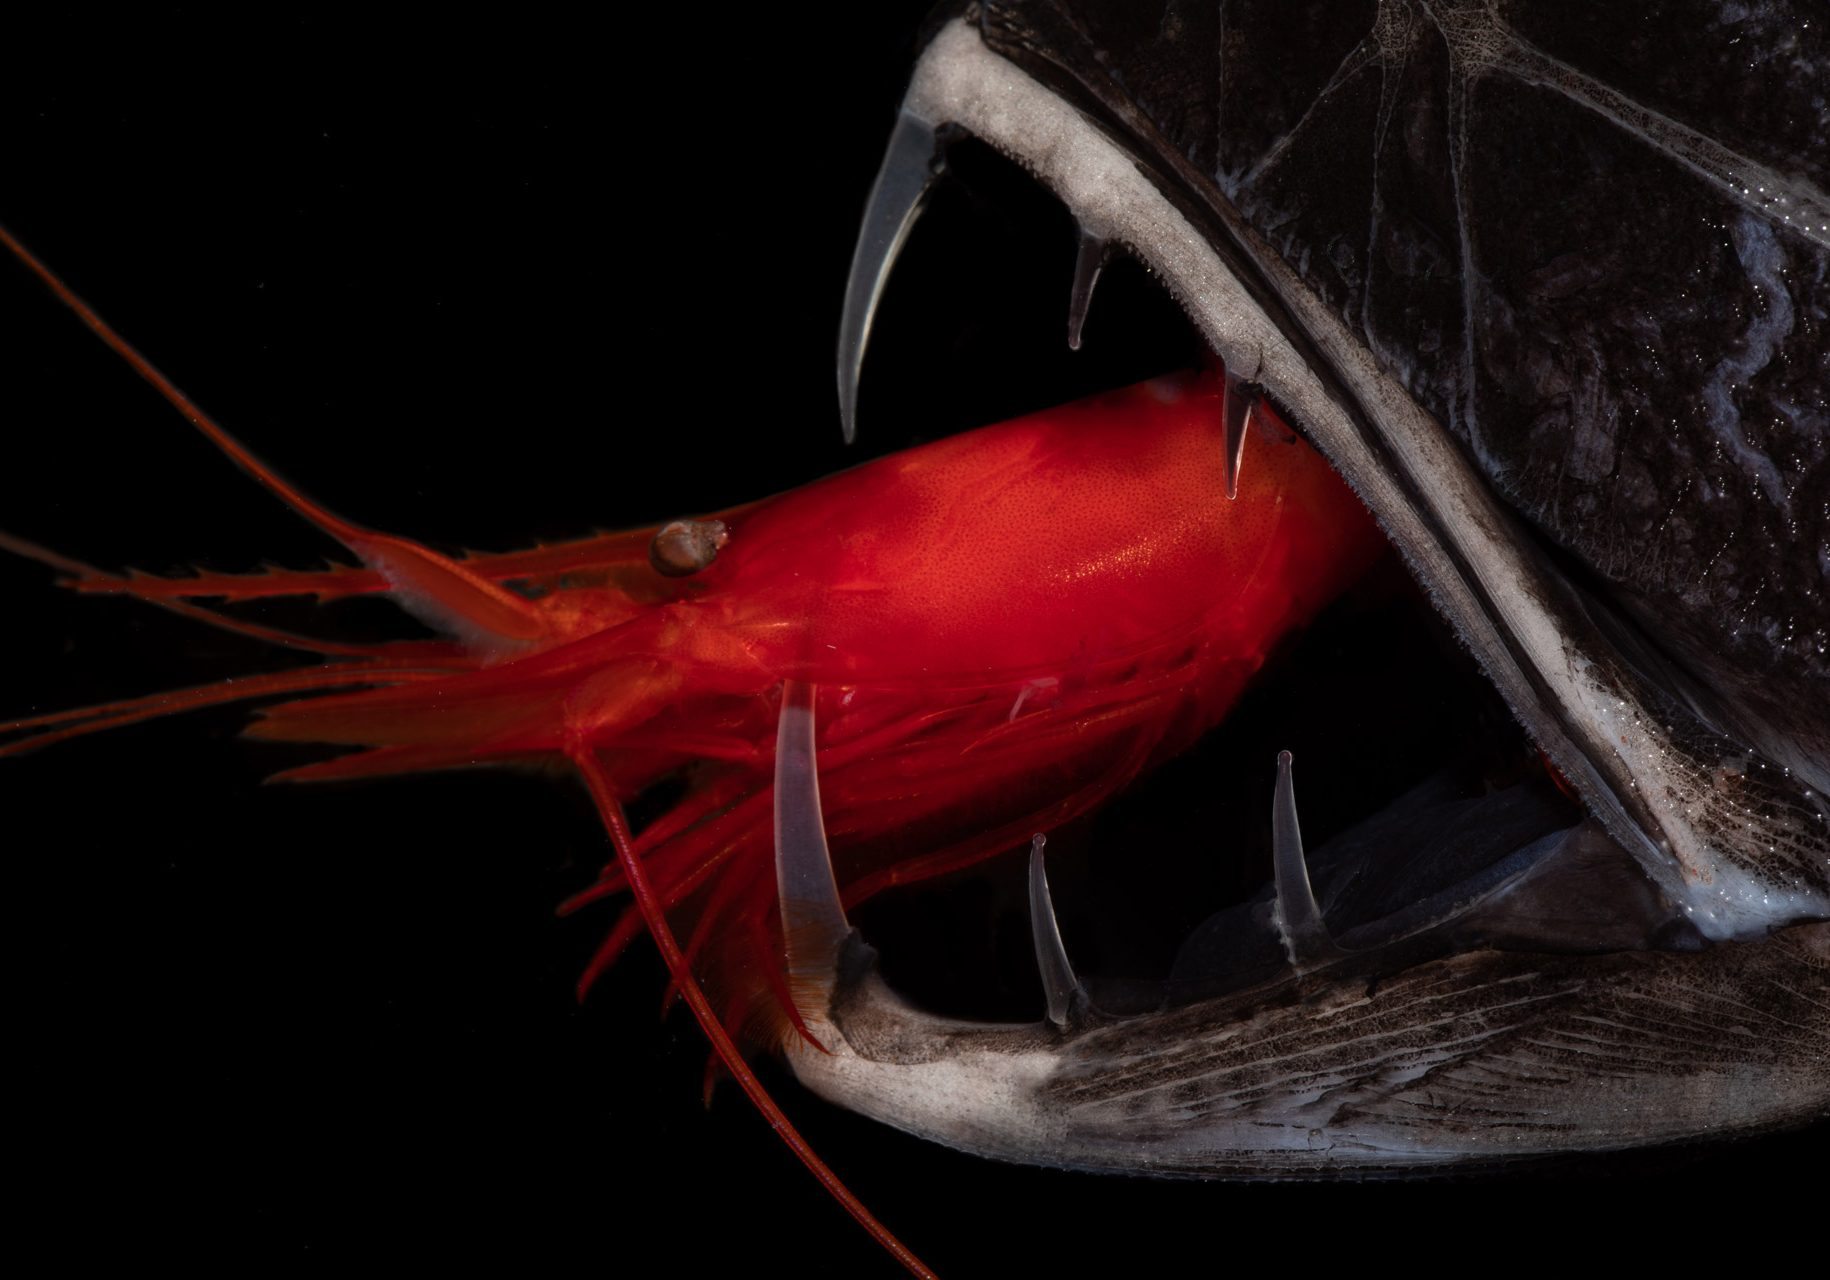 a red krill in the jaws of a fish